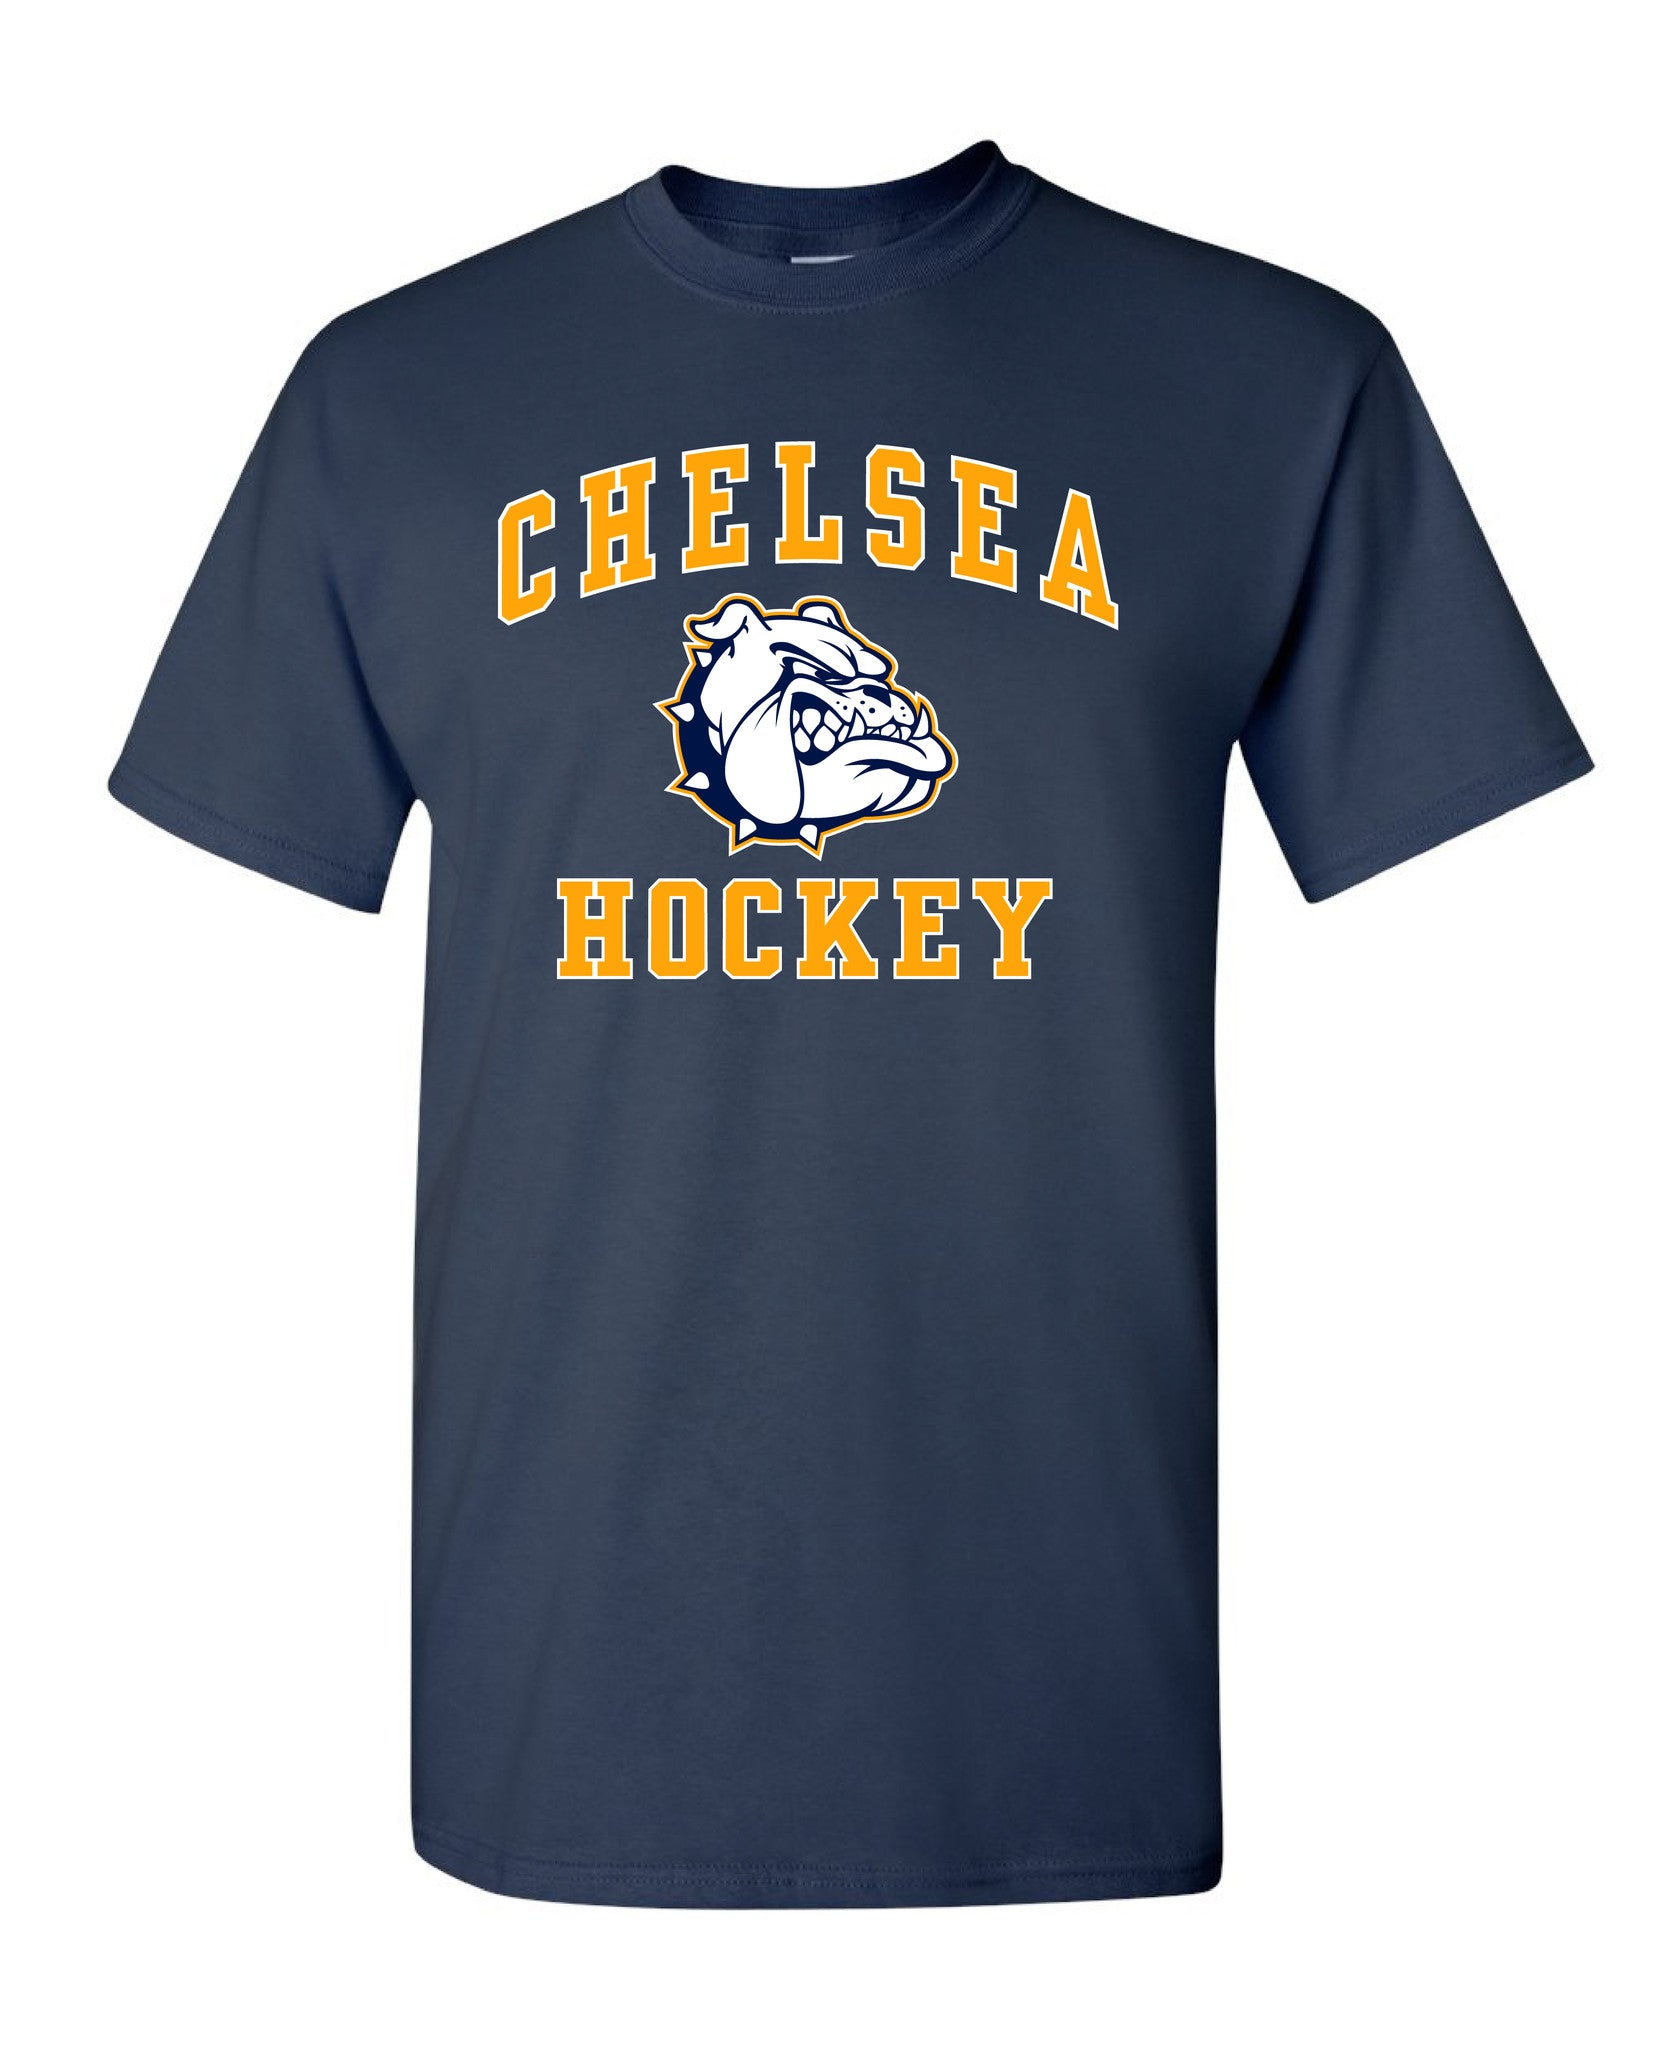 Adult Chelsea Hockey Cotton T-Shirt